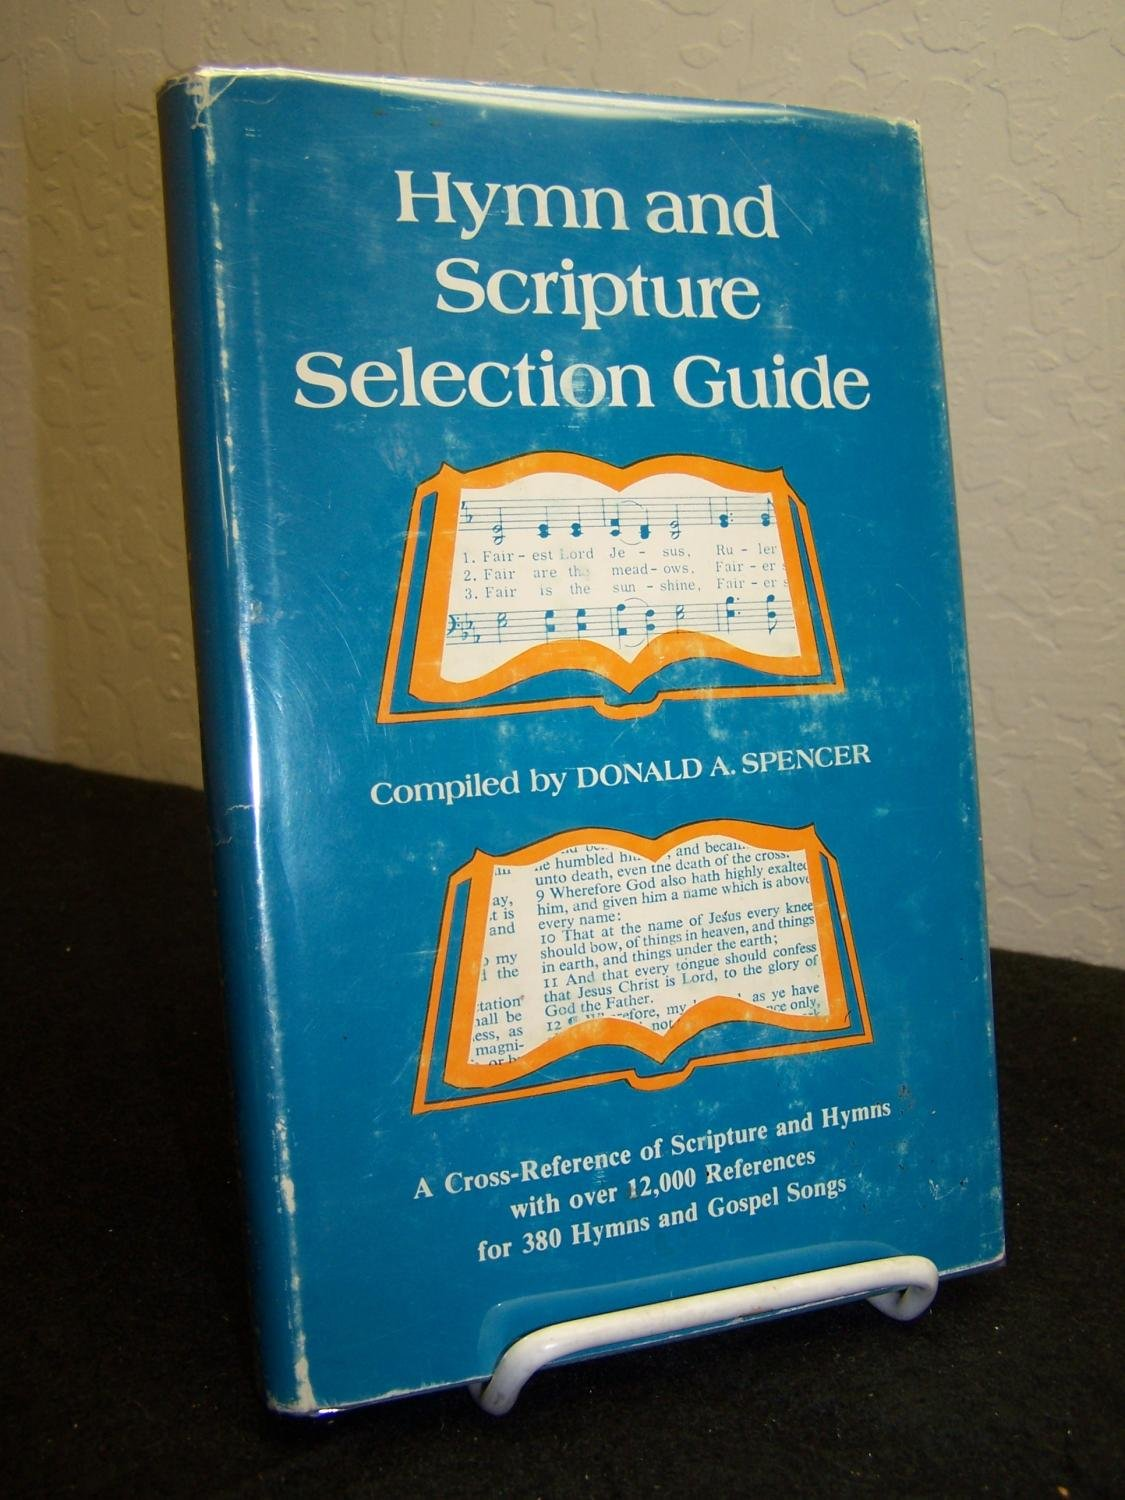 Hymn and Scripture selection guide: A cross-reference of